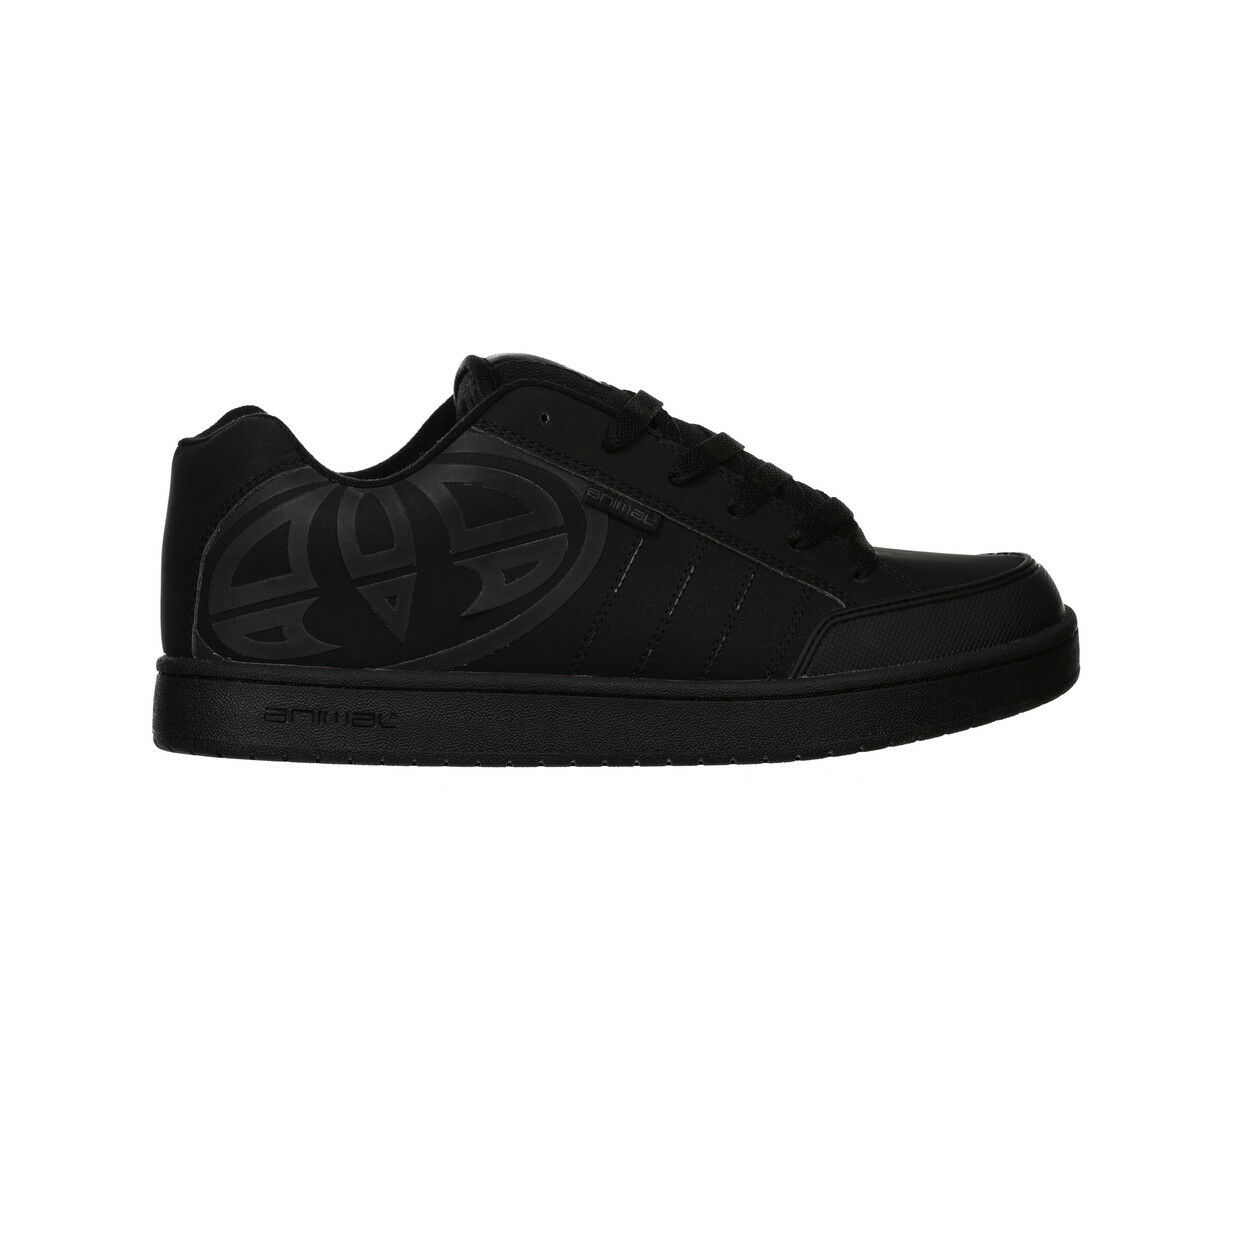 ANIMAL  Herren TRAINERS.BOXED MITCH ALL BLACK PADDED SOLE SKATE Schuhe.RUBBER SOLE PADDED 8W 2 8ecfe3